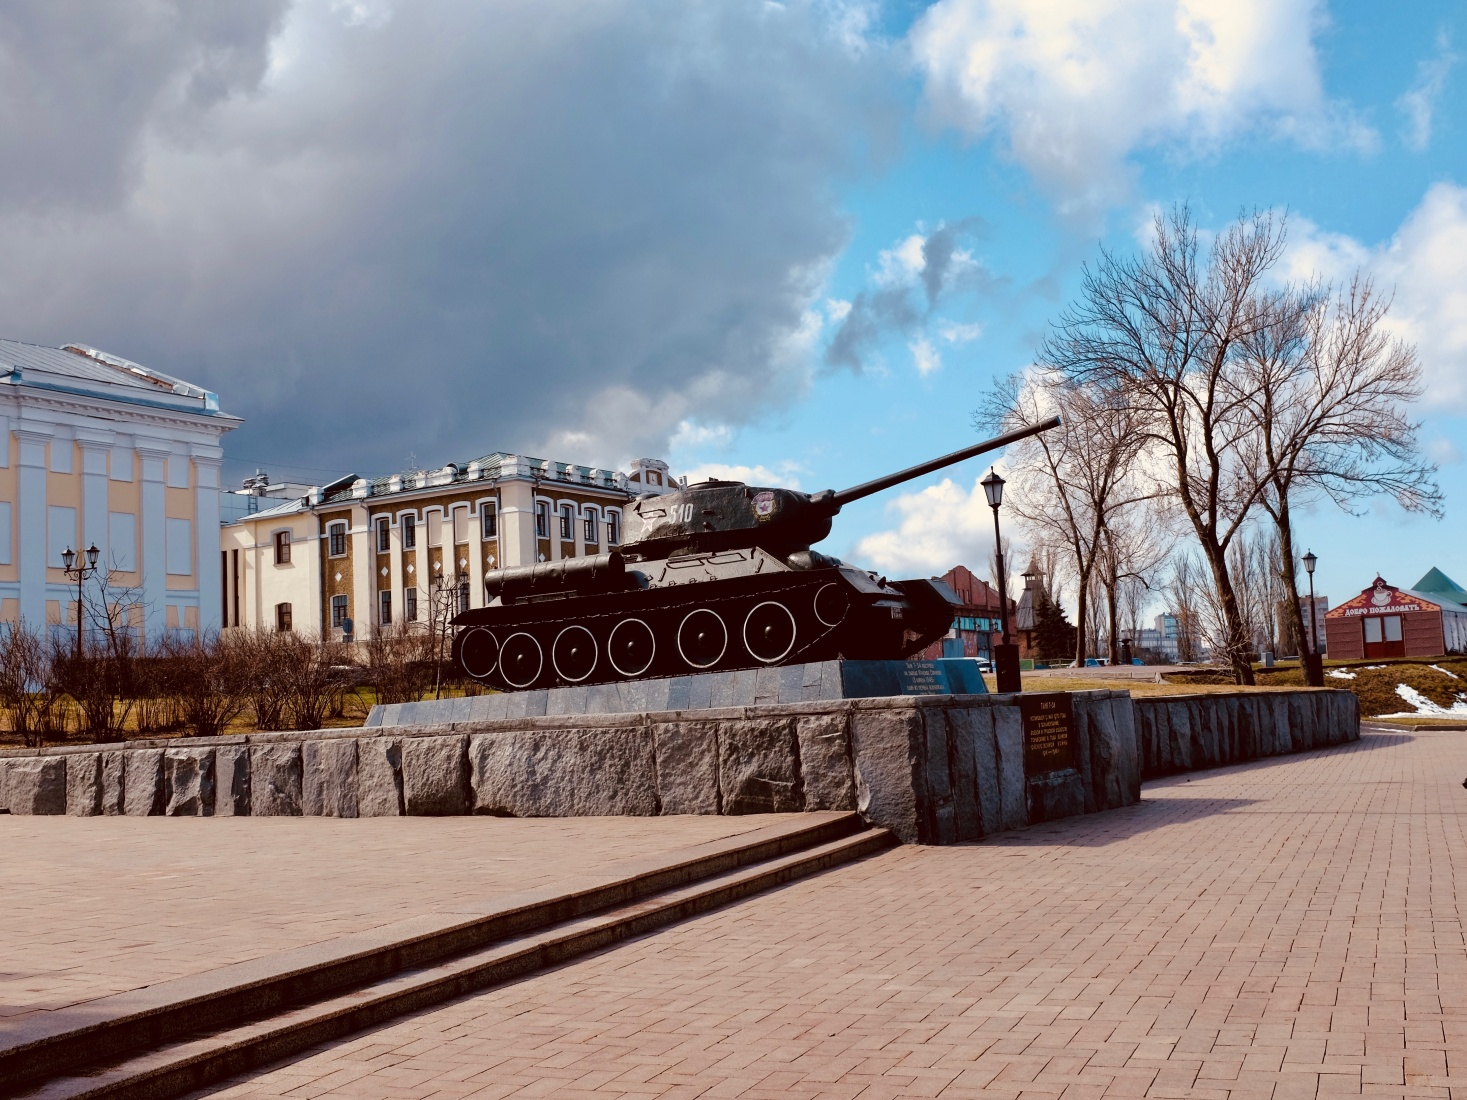 Old Soviet era tank in middle of the kremlin in Nizhny Novgorod, Russia.